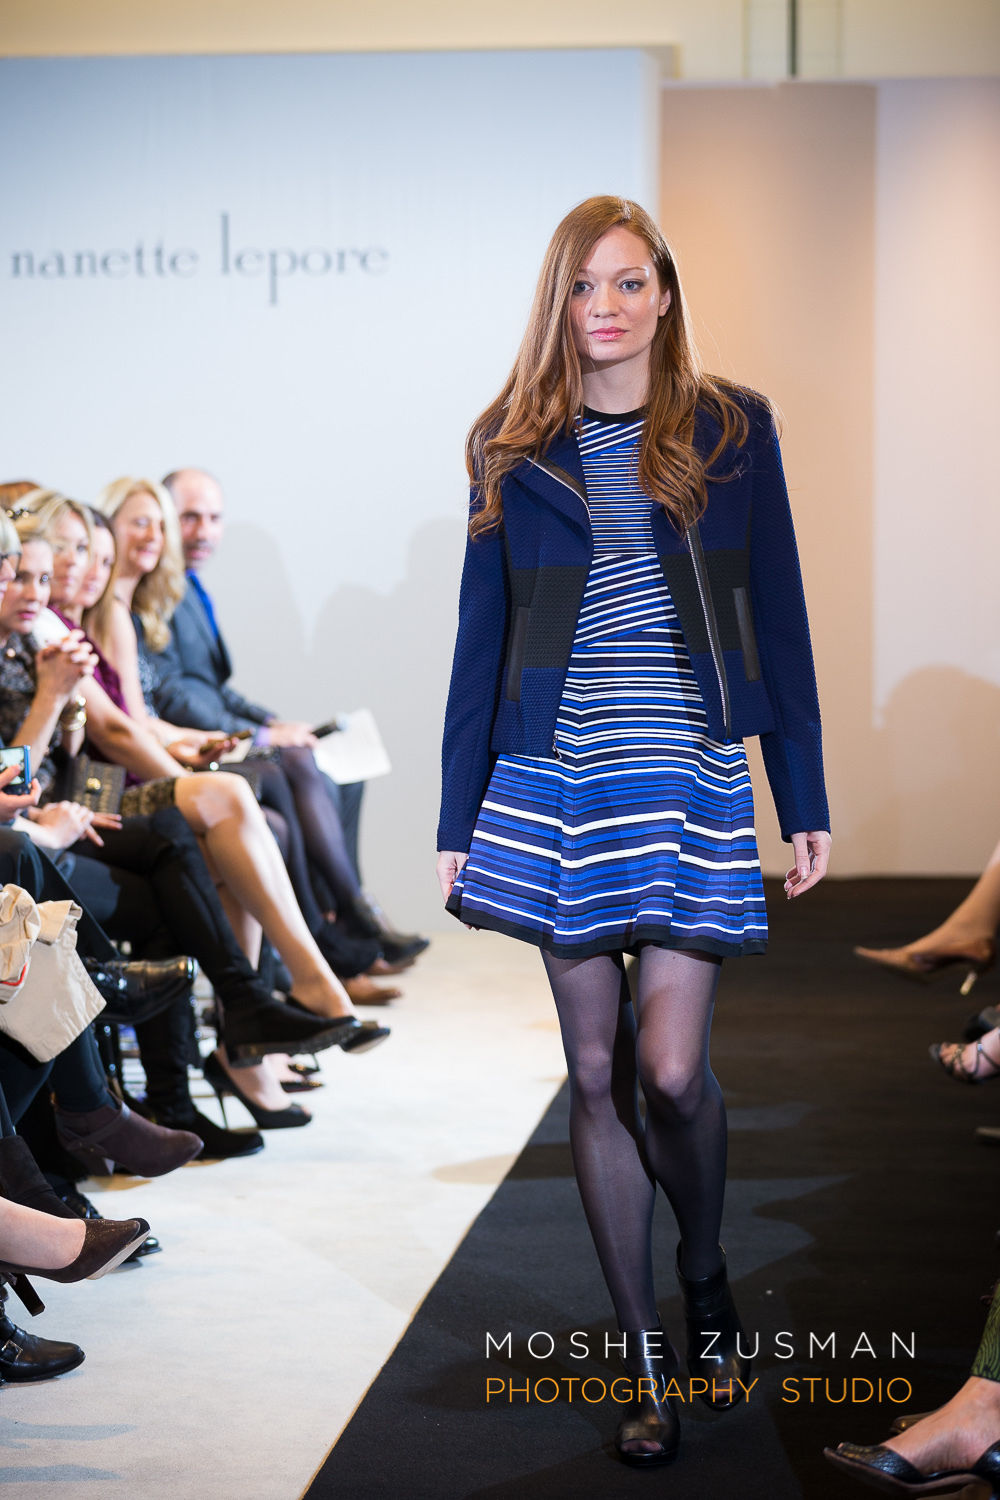 Nanette-Lepore-Saks-Fifth-Avenue-Fashion-Show-Moshe-Zusman-Photography-22.jpg